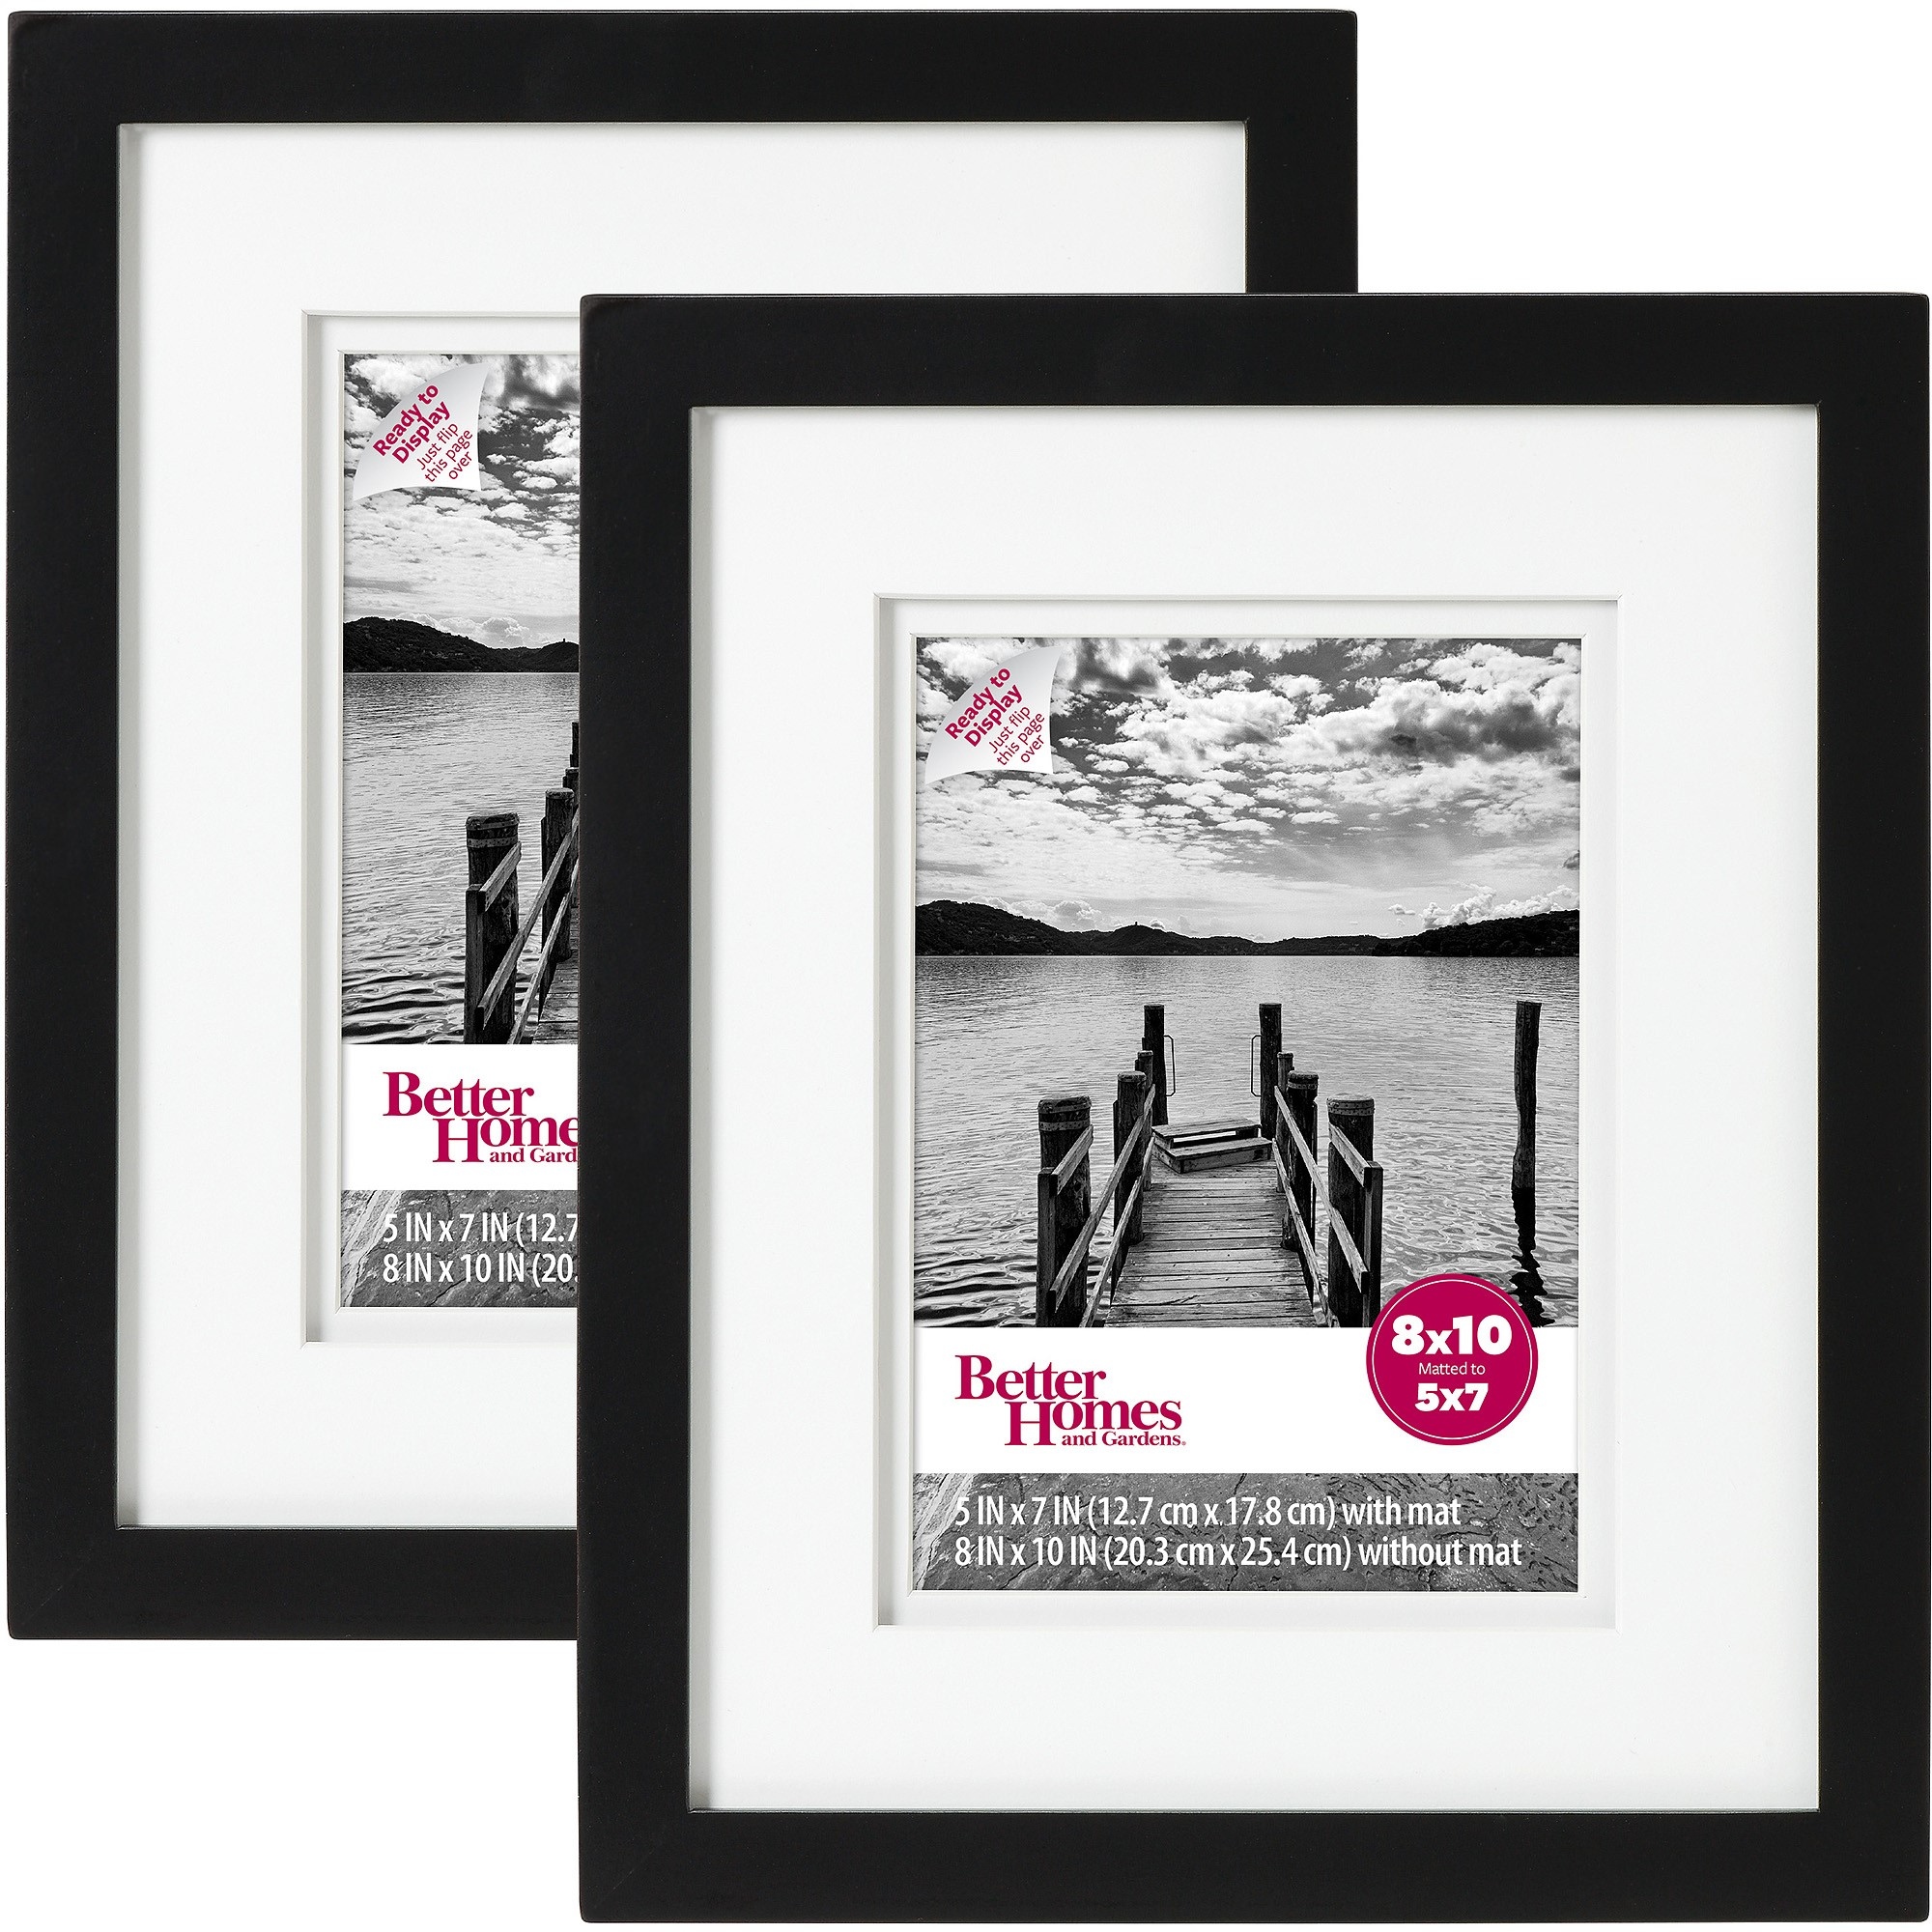 "Better Homes & Gardens Picture Frame Black, Set of 2, 8""x10"""